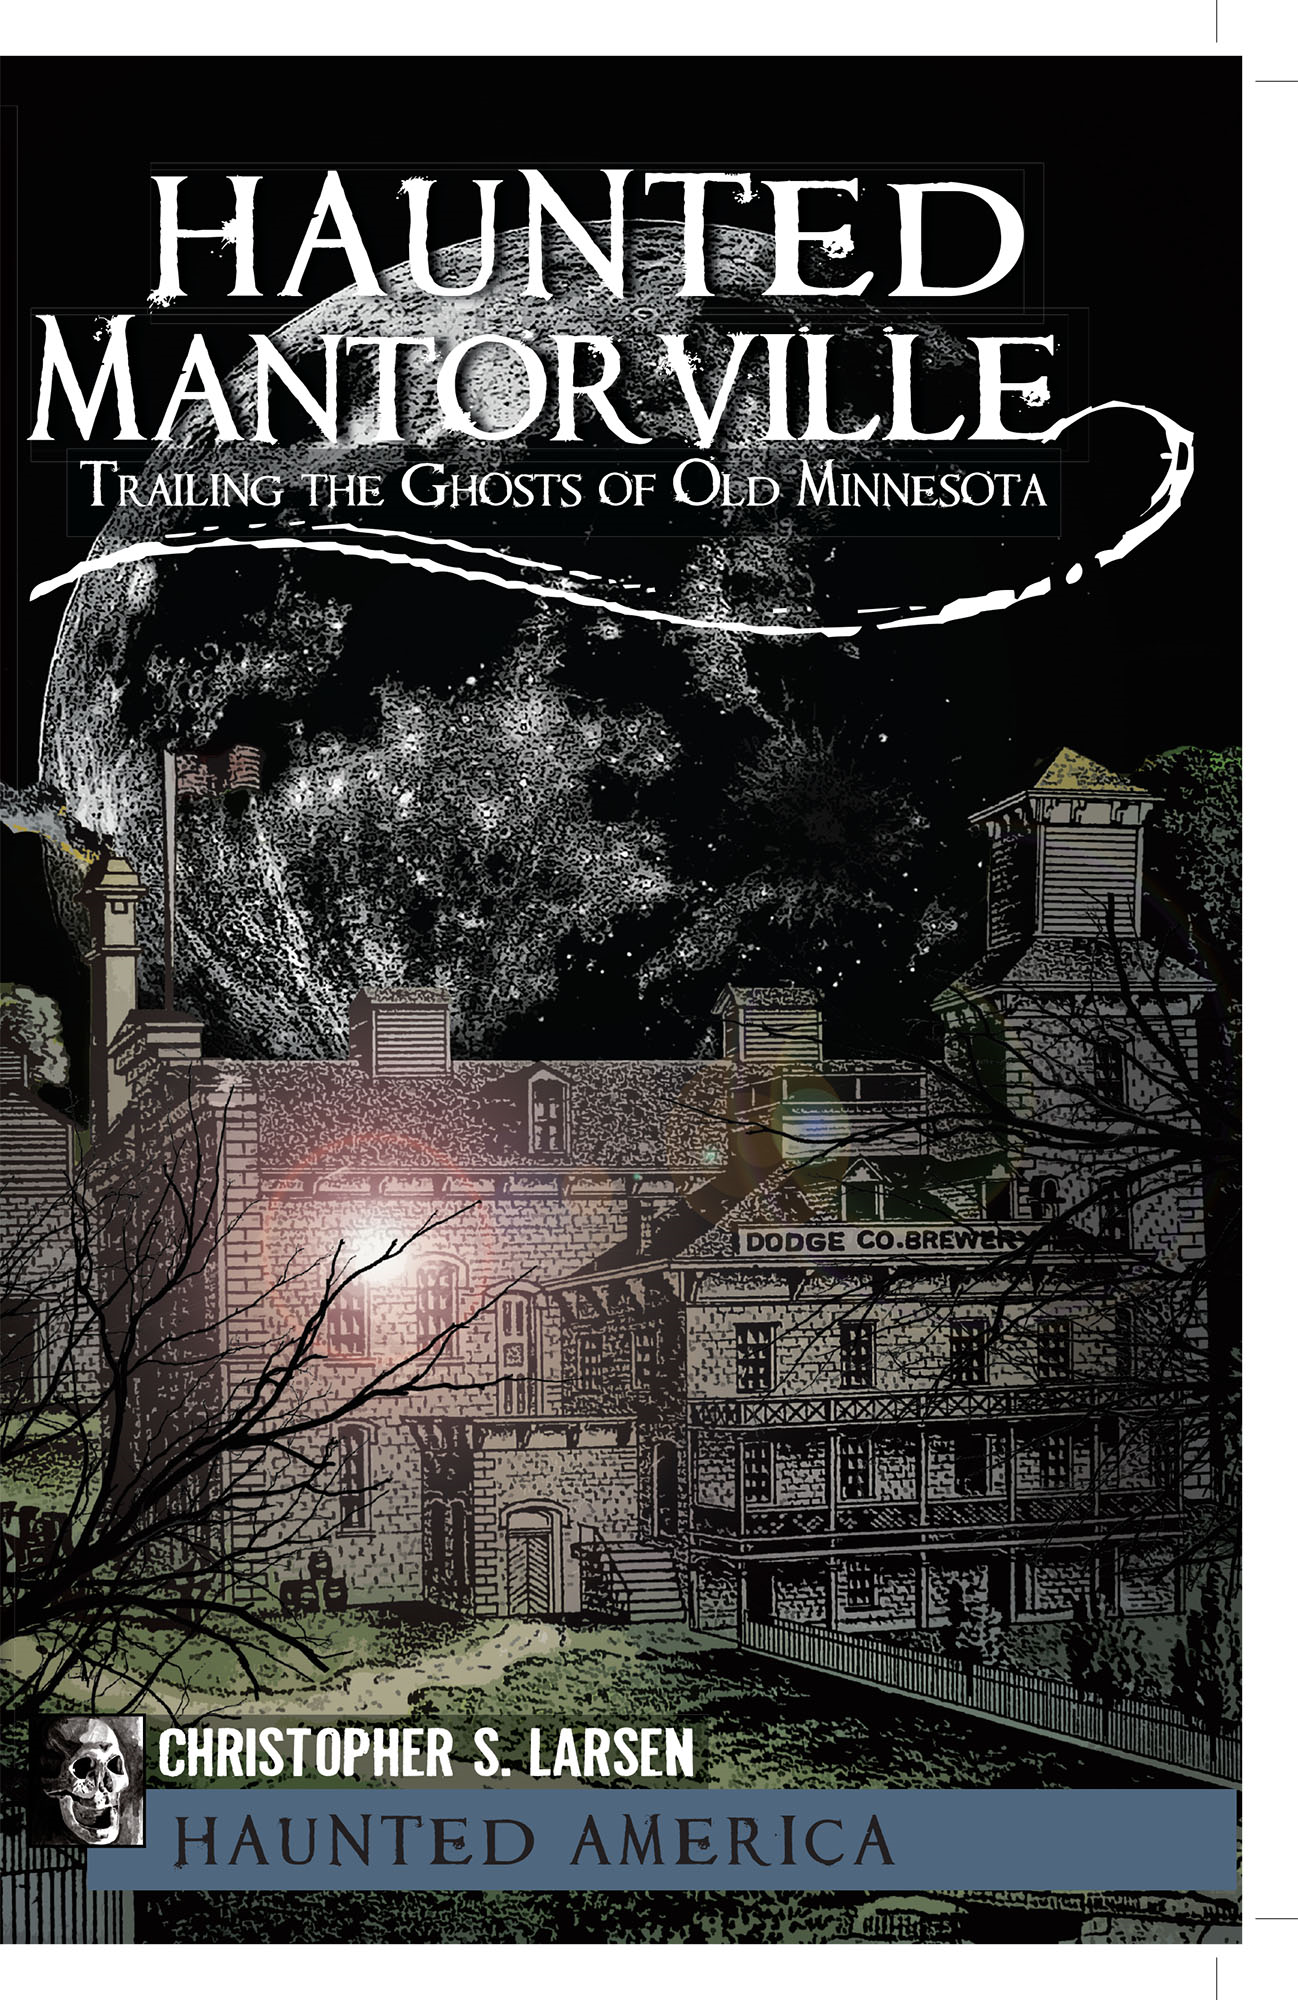 Haunted Mantorville